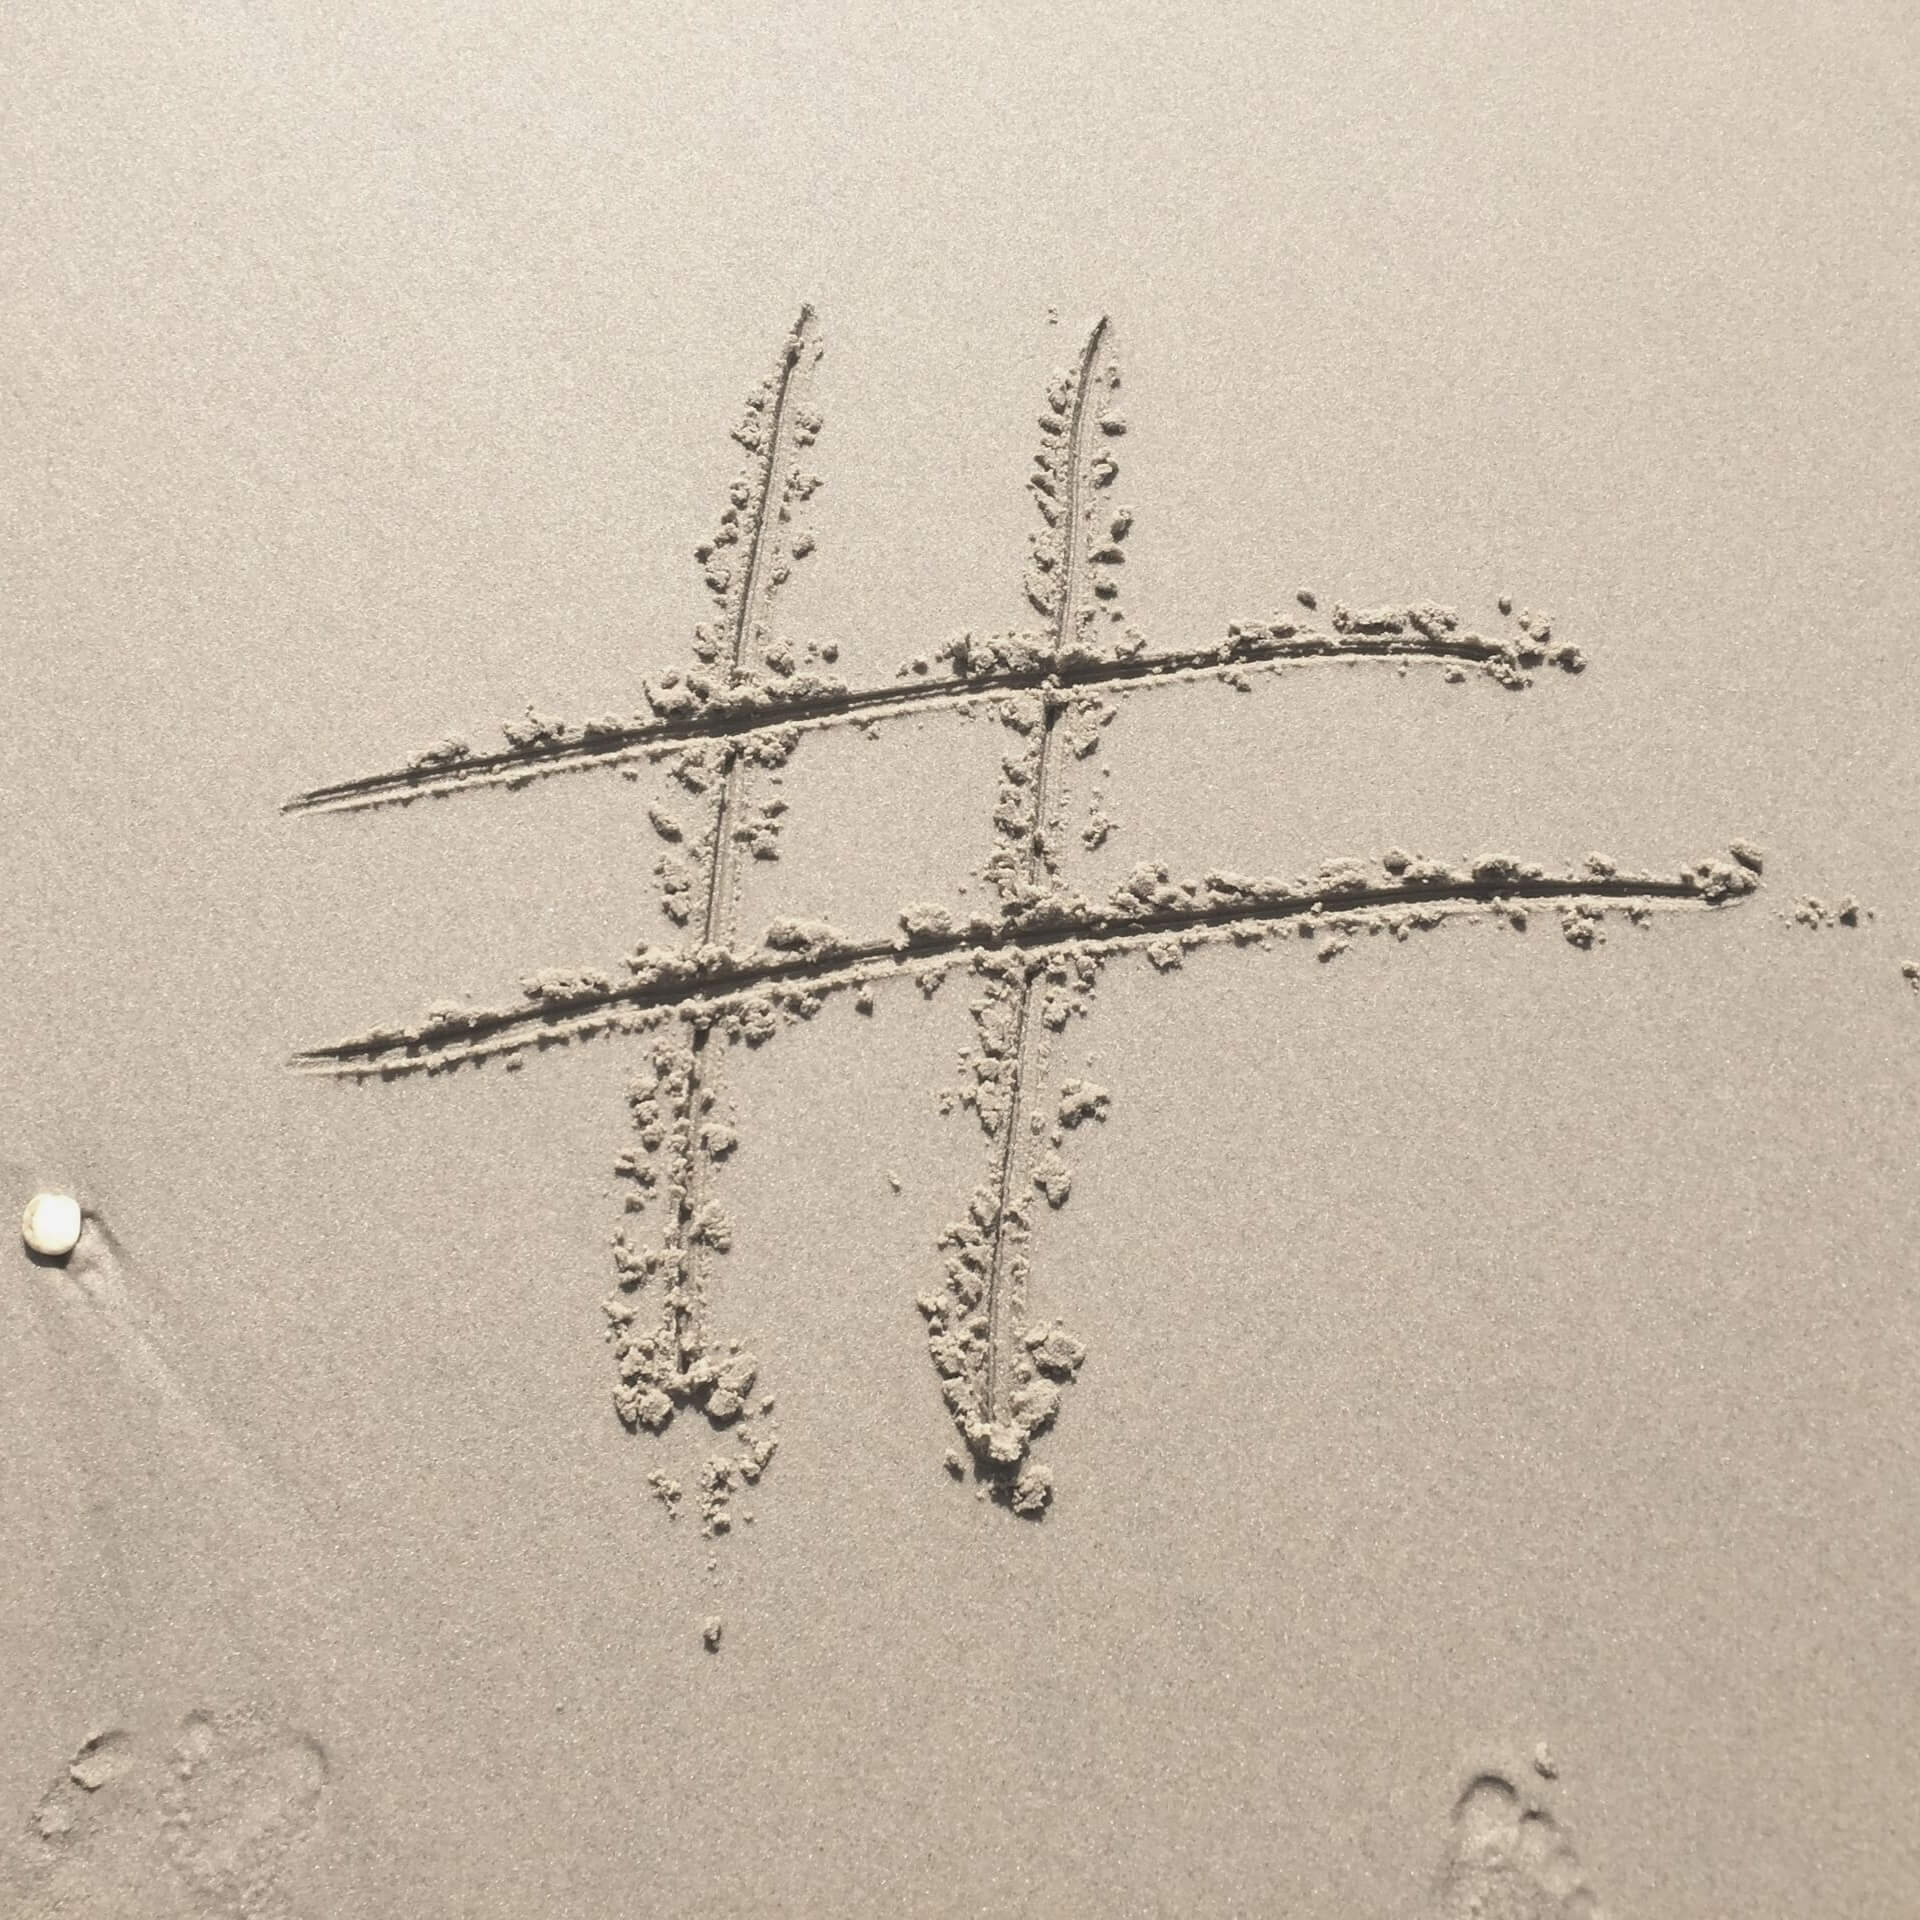 Instagram hashtags tips: hashtag drawn in sand on a beach